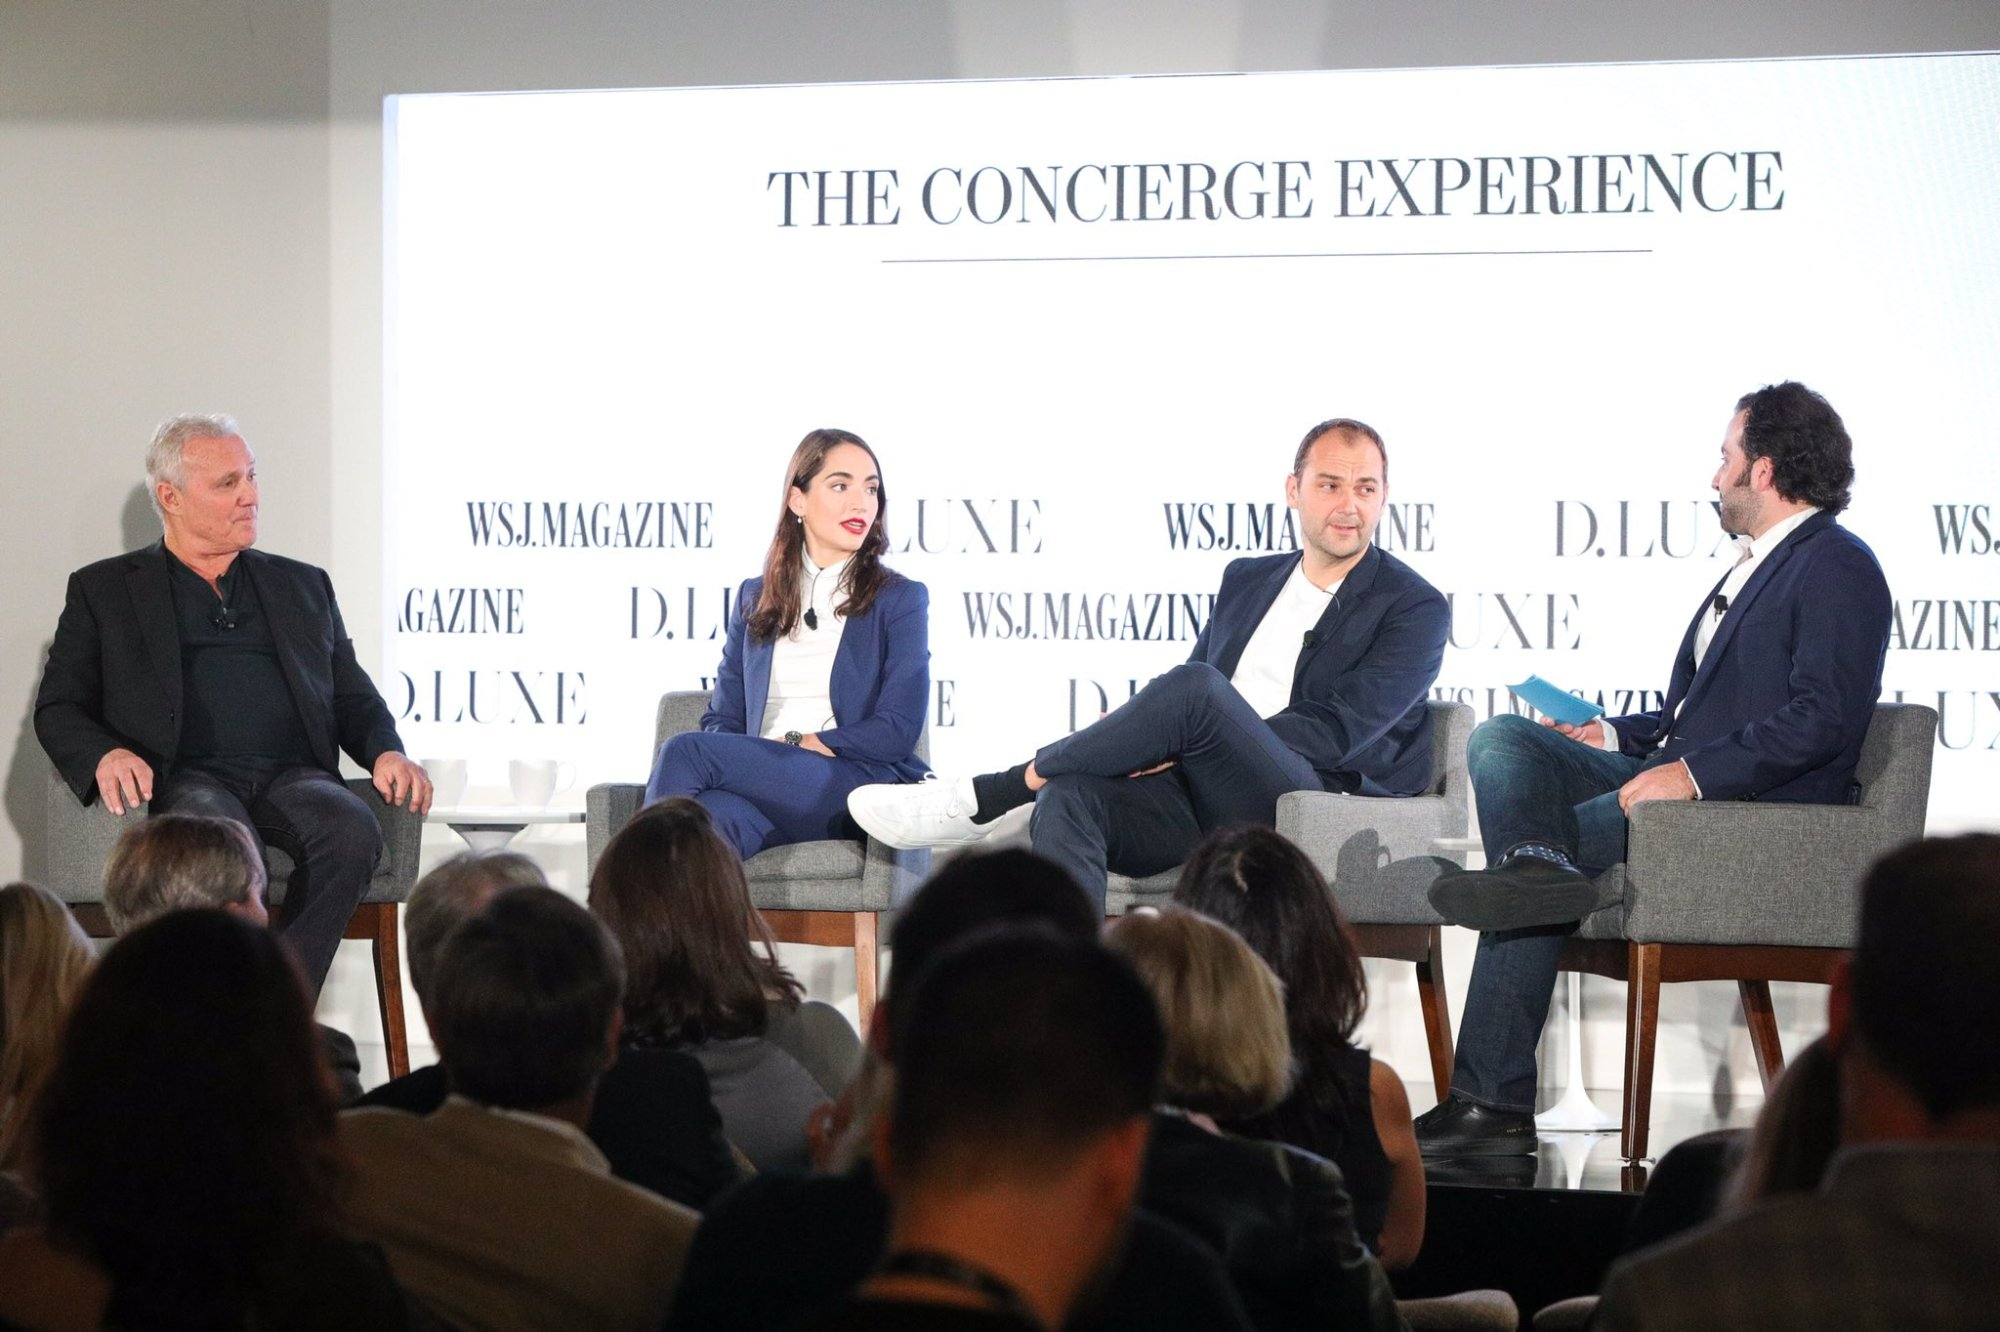 Ian Schrager, Marcela Sapone, Daniel Humm, Howie Khan at WSJ D.Luxe conference.